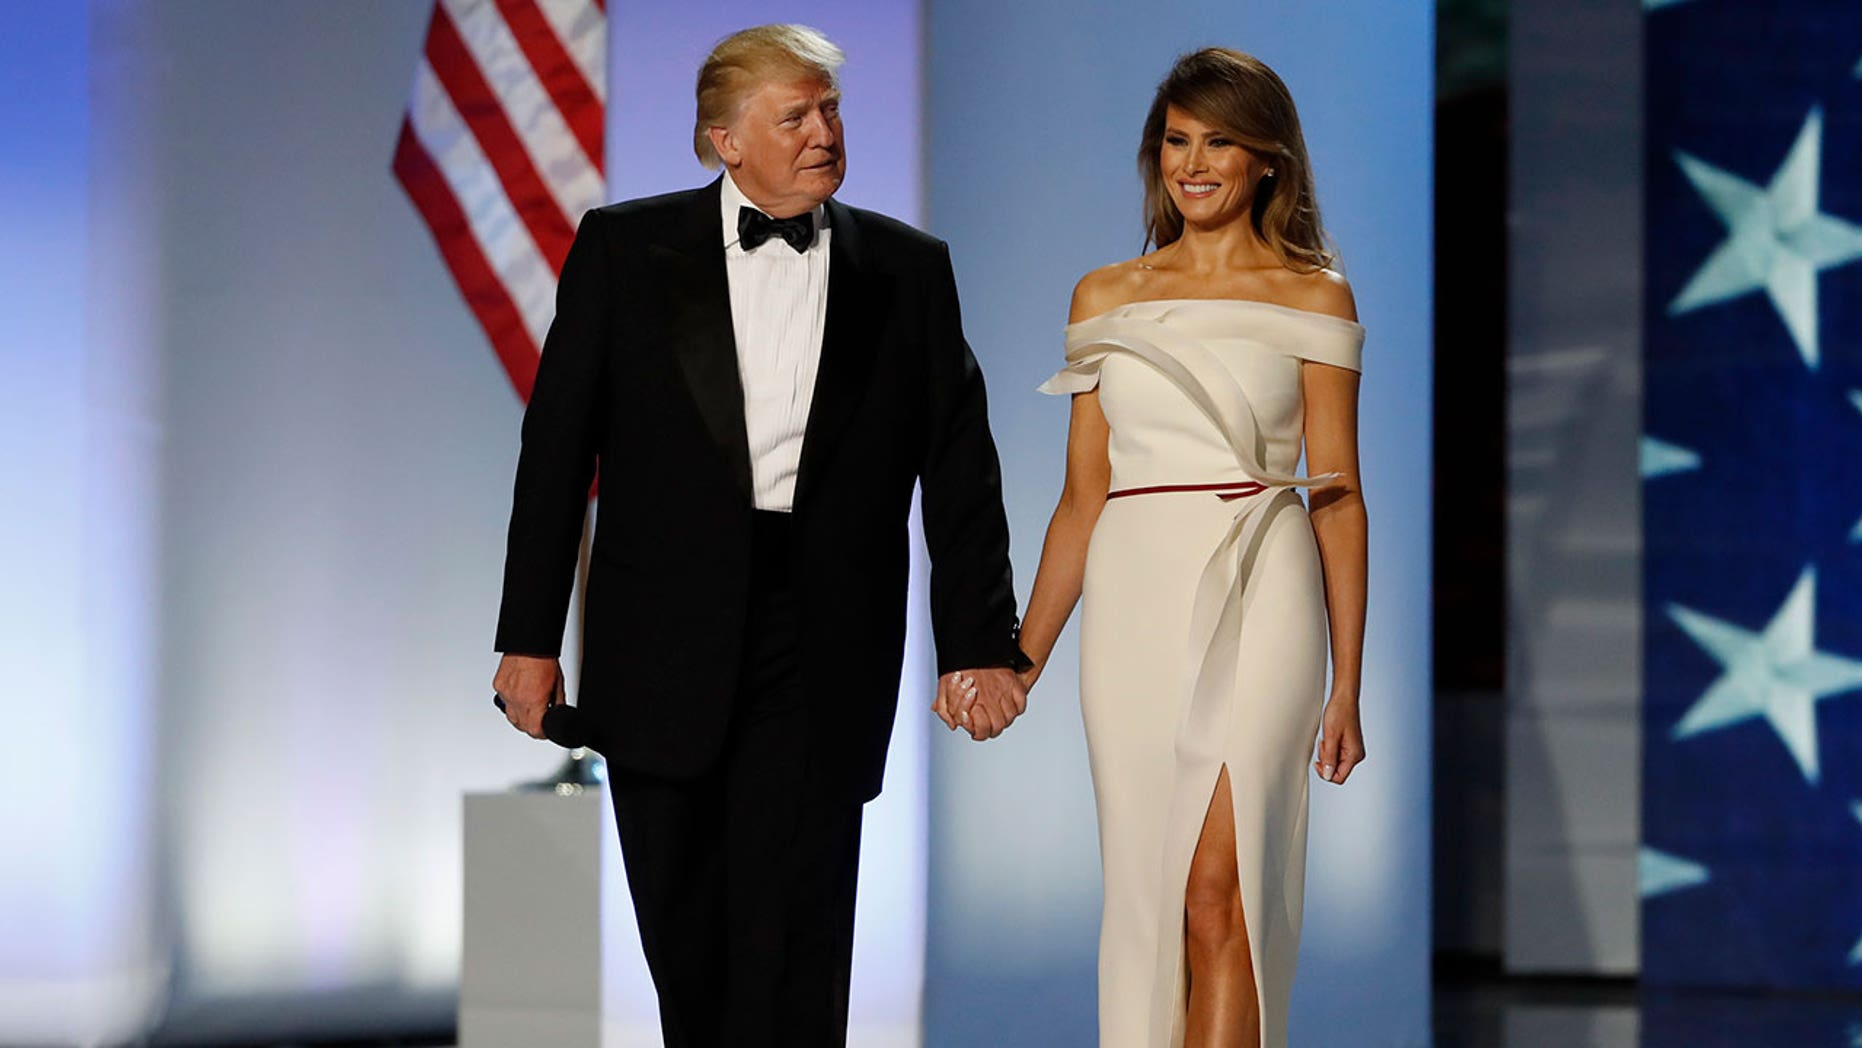 Trump S Gown Will Be Placed In The Smithsonian First Las Exhibit Alongside Dresses From